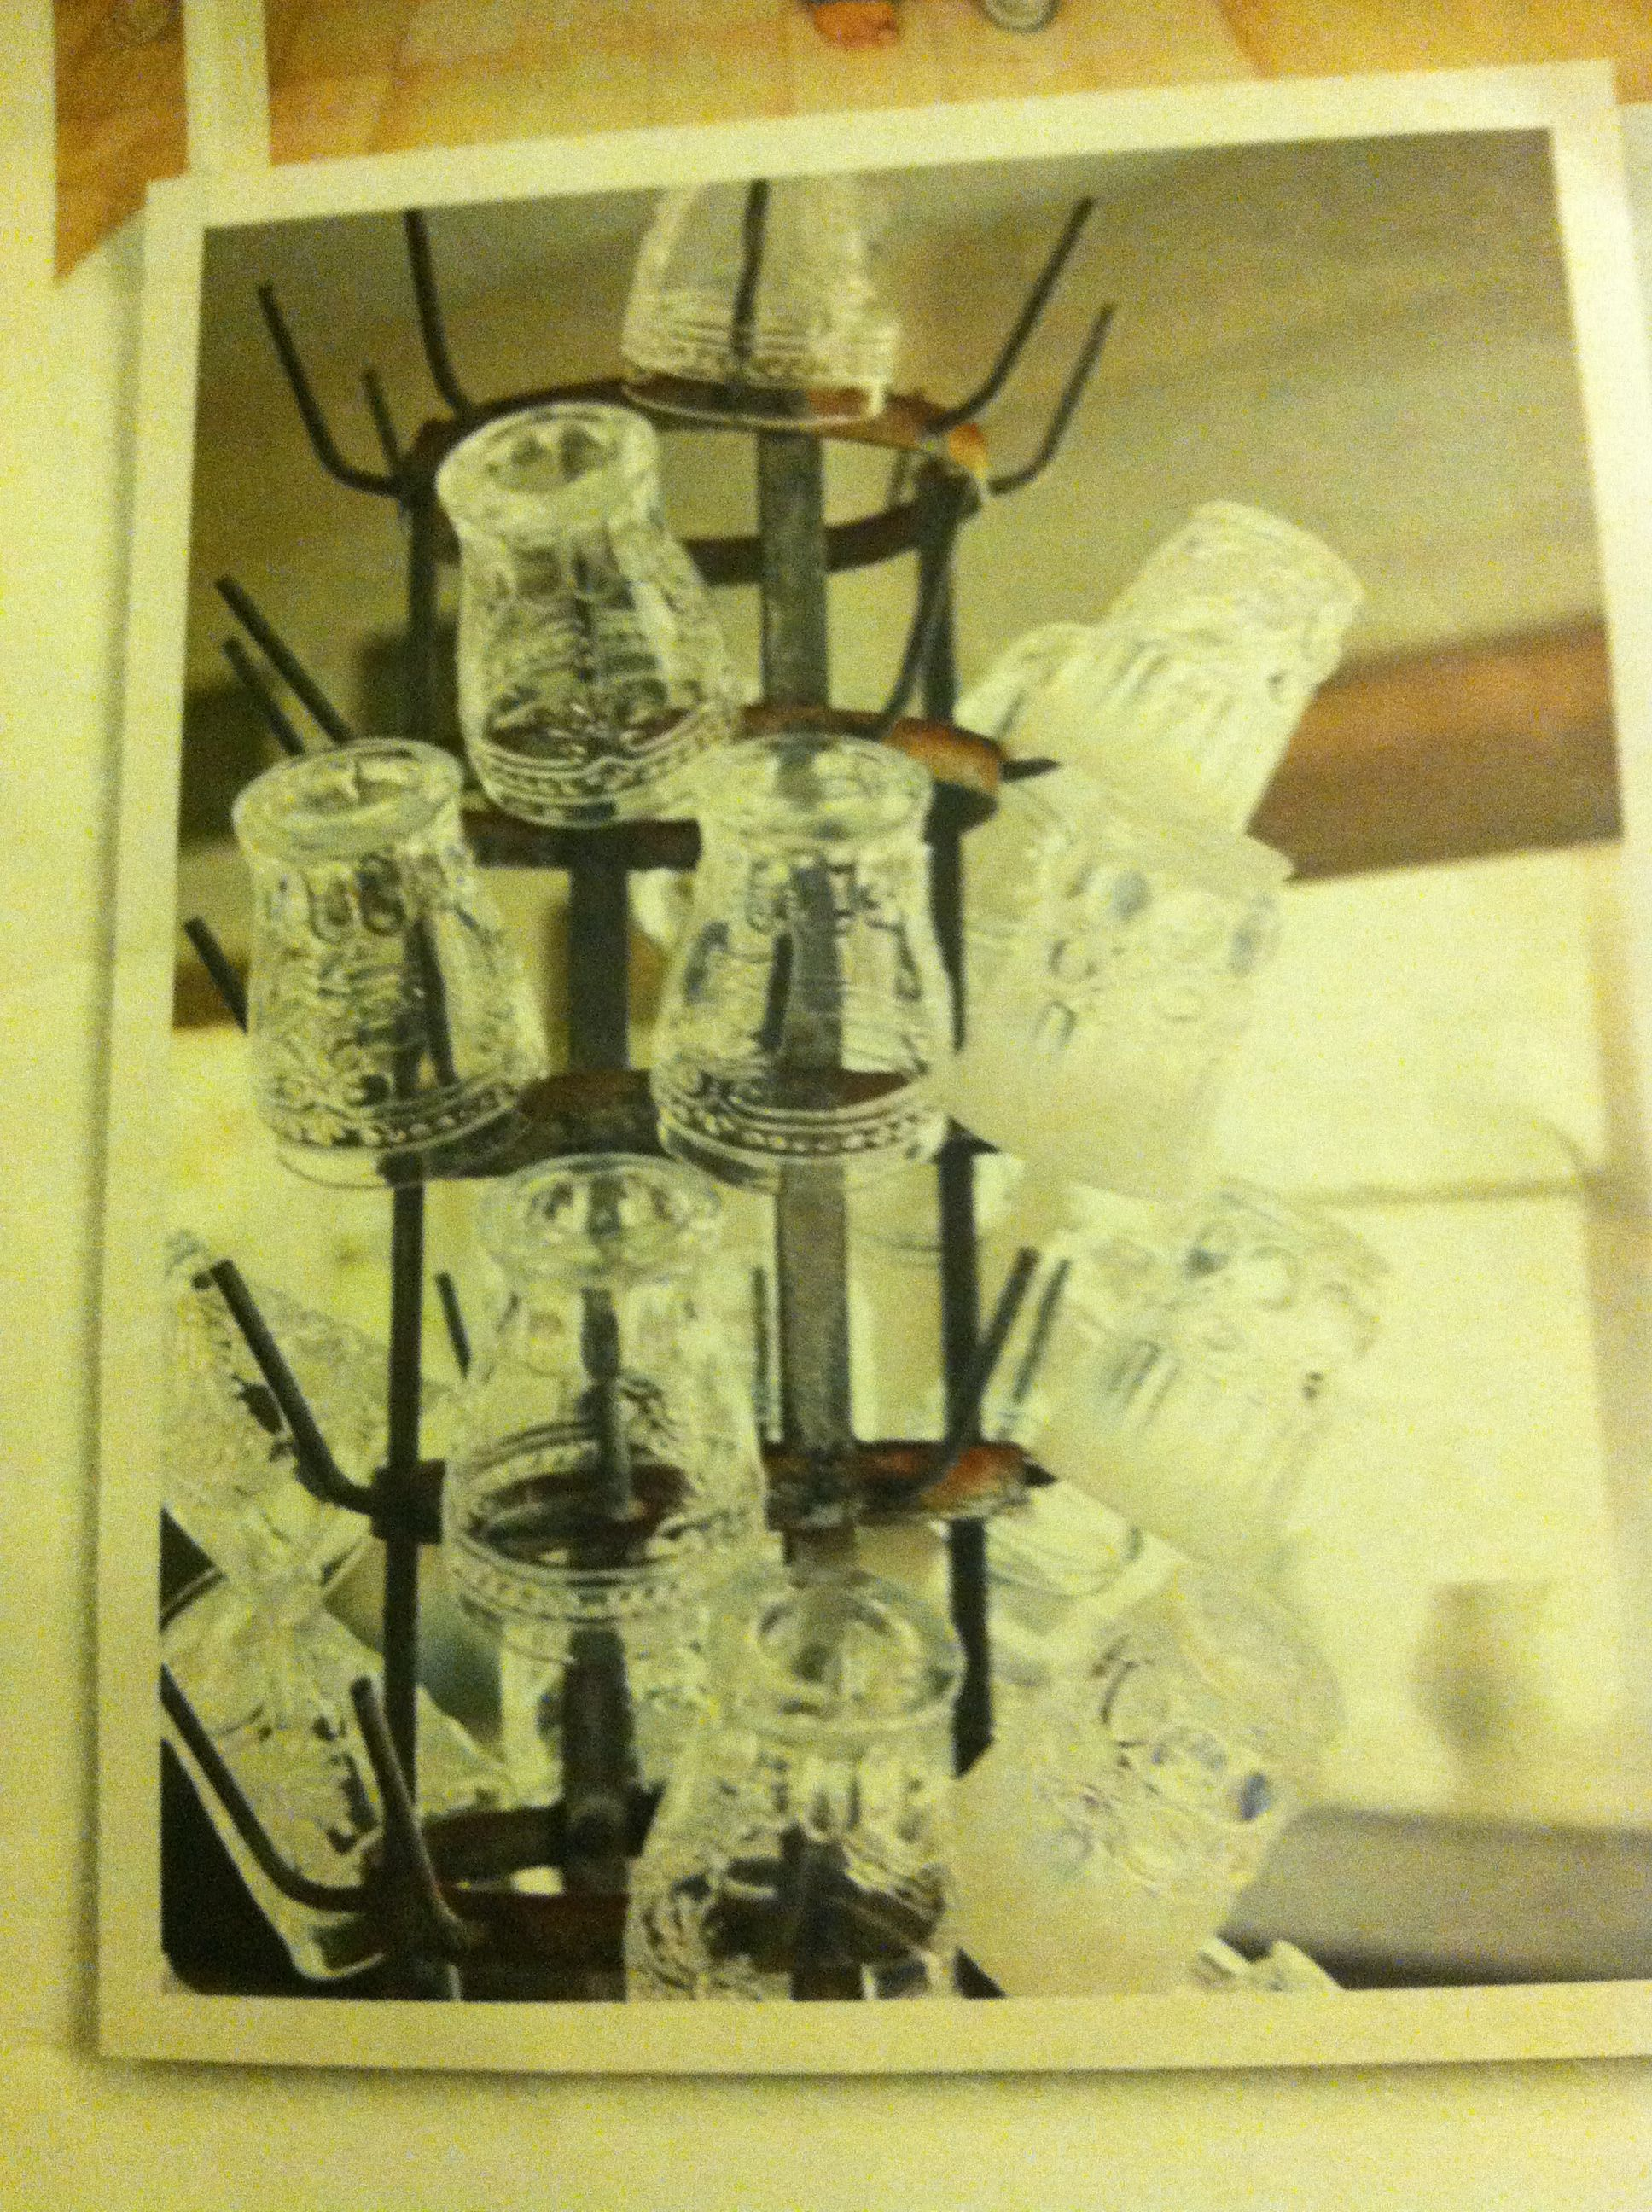 10x10 Grow Room Design: Bottle-drying Rack With Glasses From Anthro. (With Images